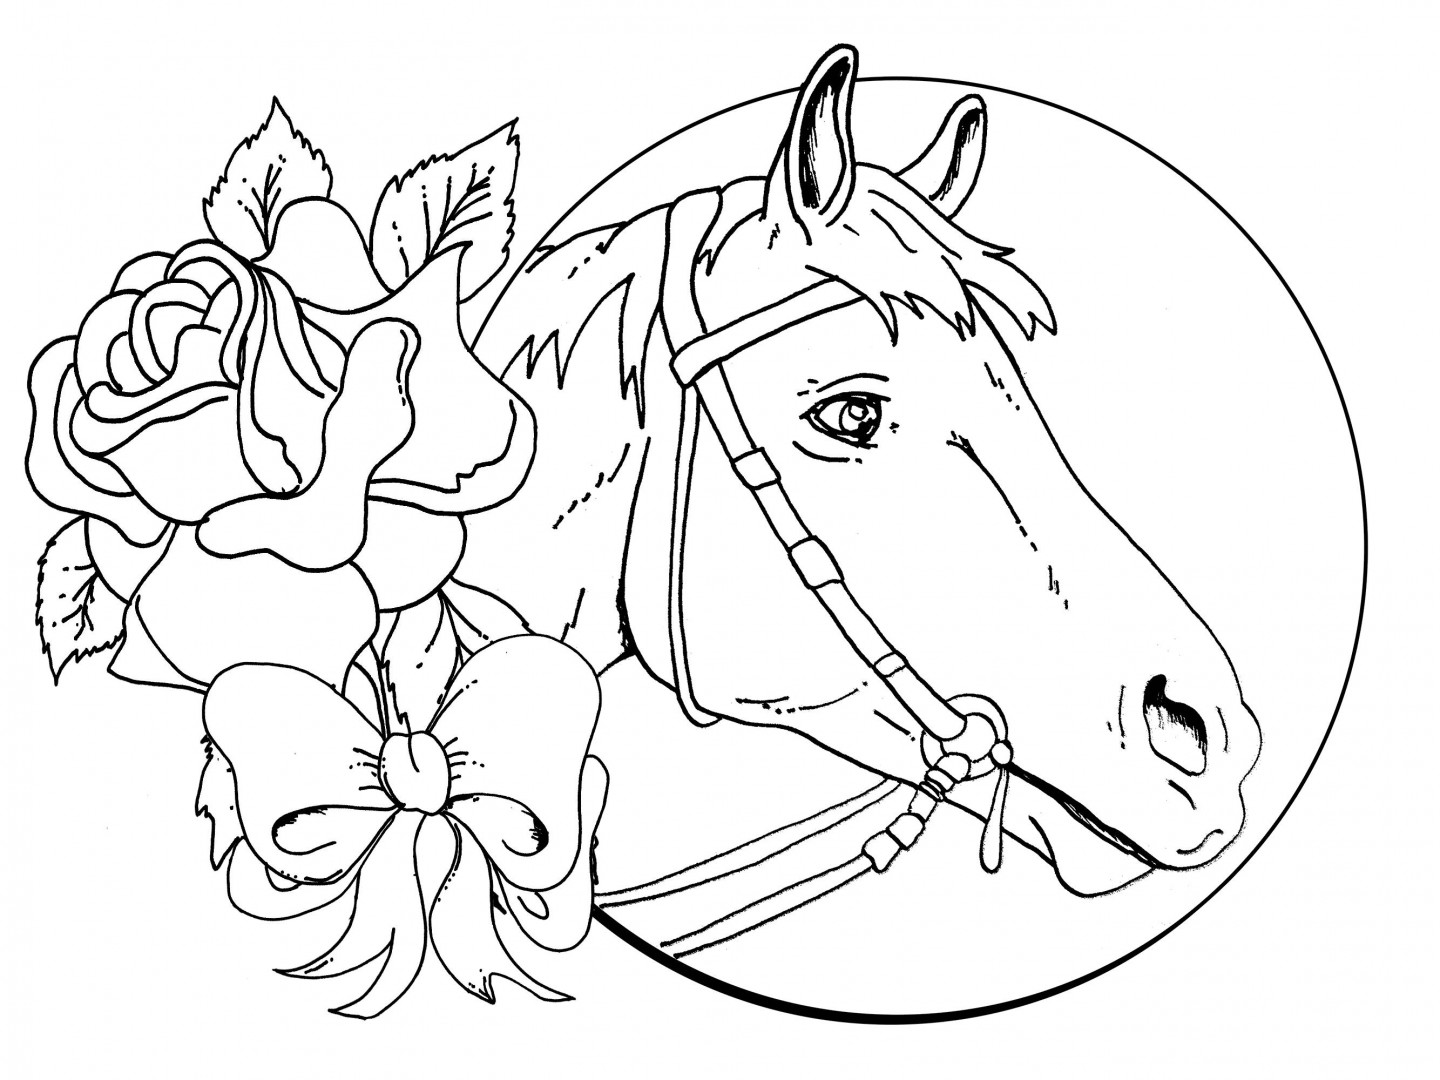 1440x1080 Coloring Pages For Girls And Up Just Colorings